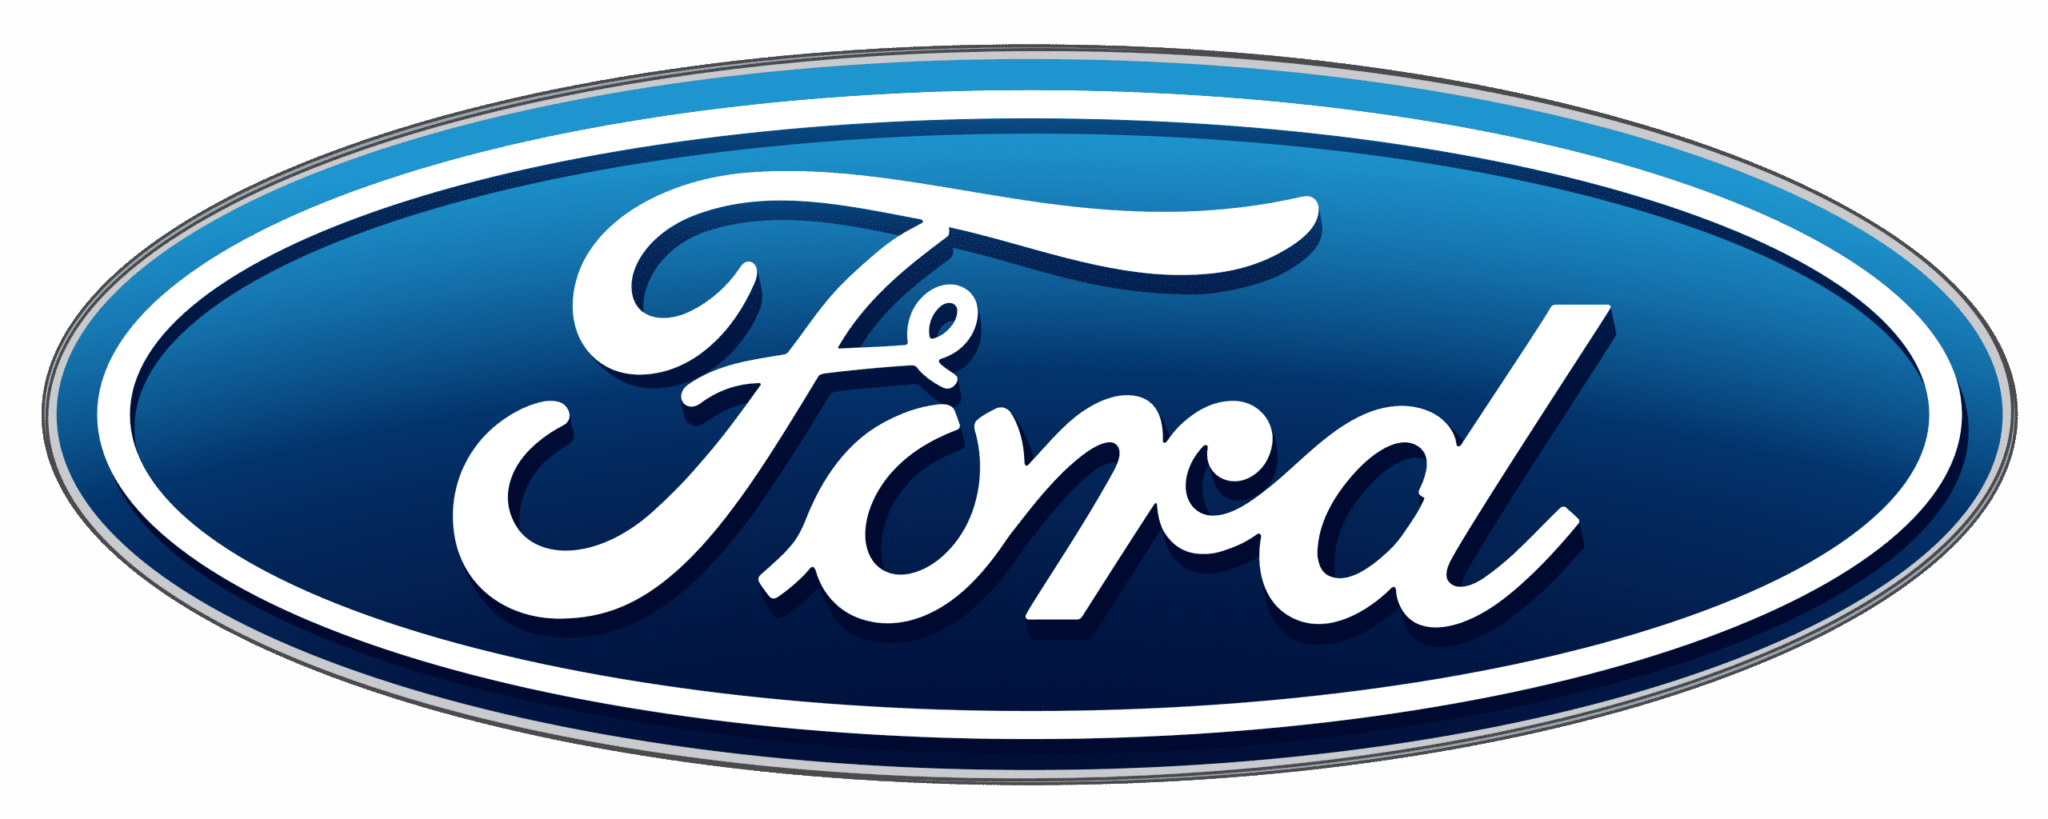 Ford_logo_motor_company_transparent